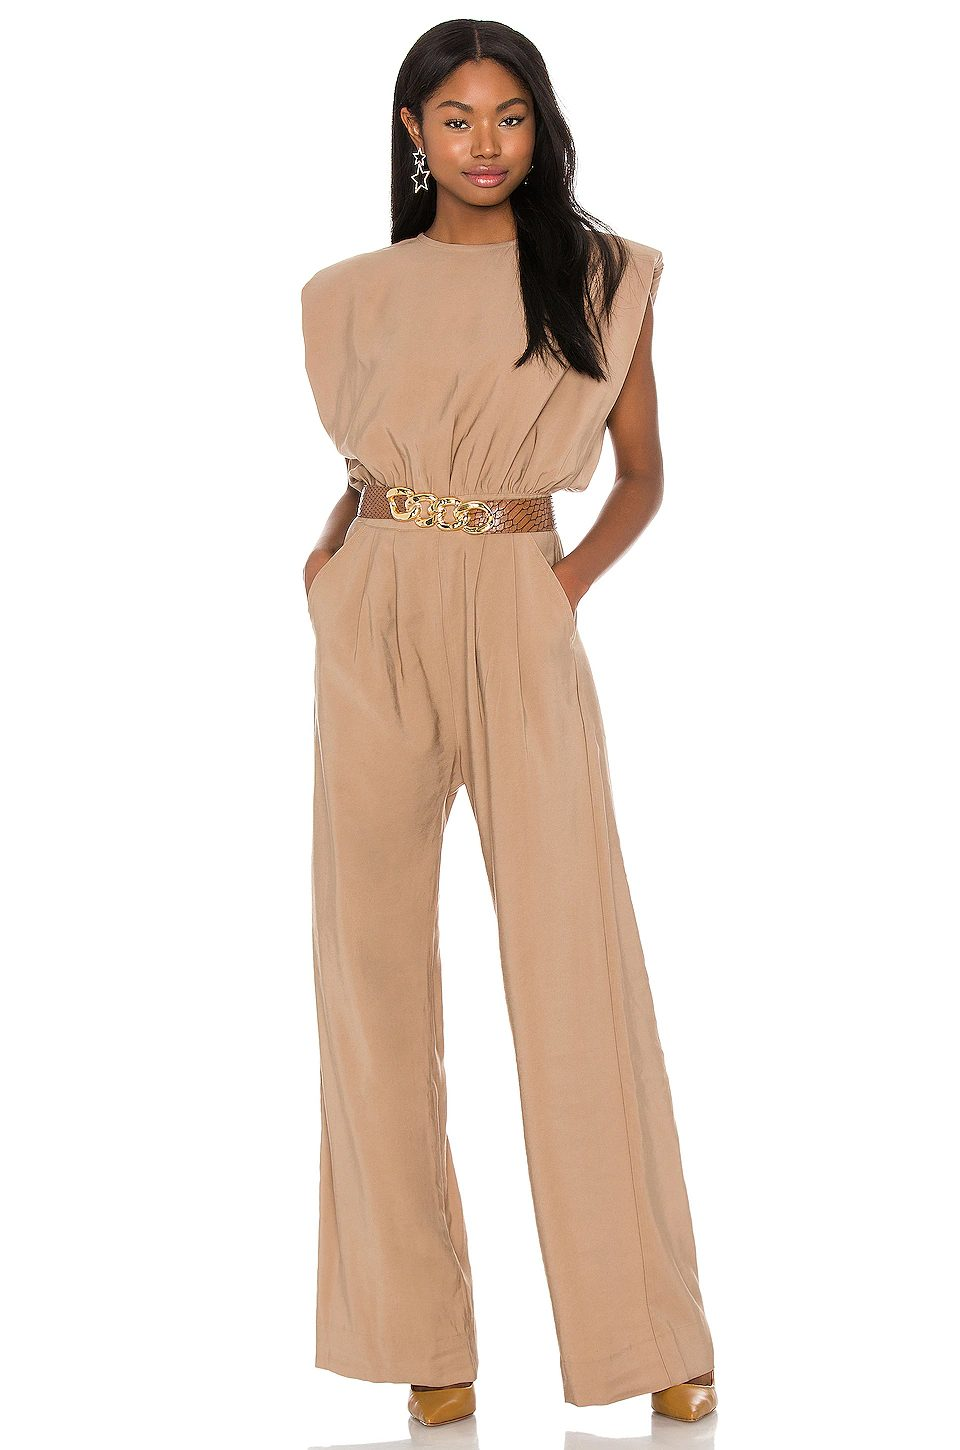 Beige jumpsuit for wedding guest outfit